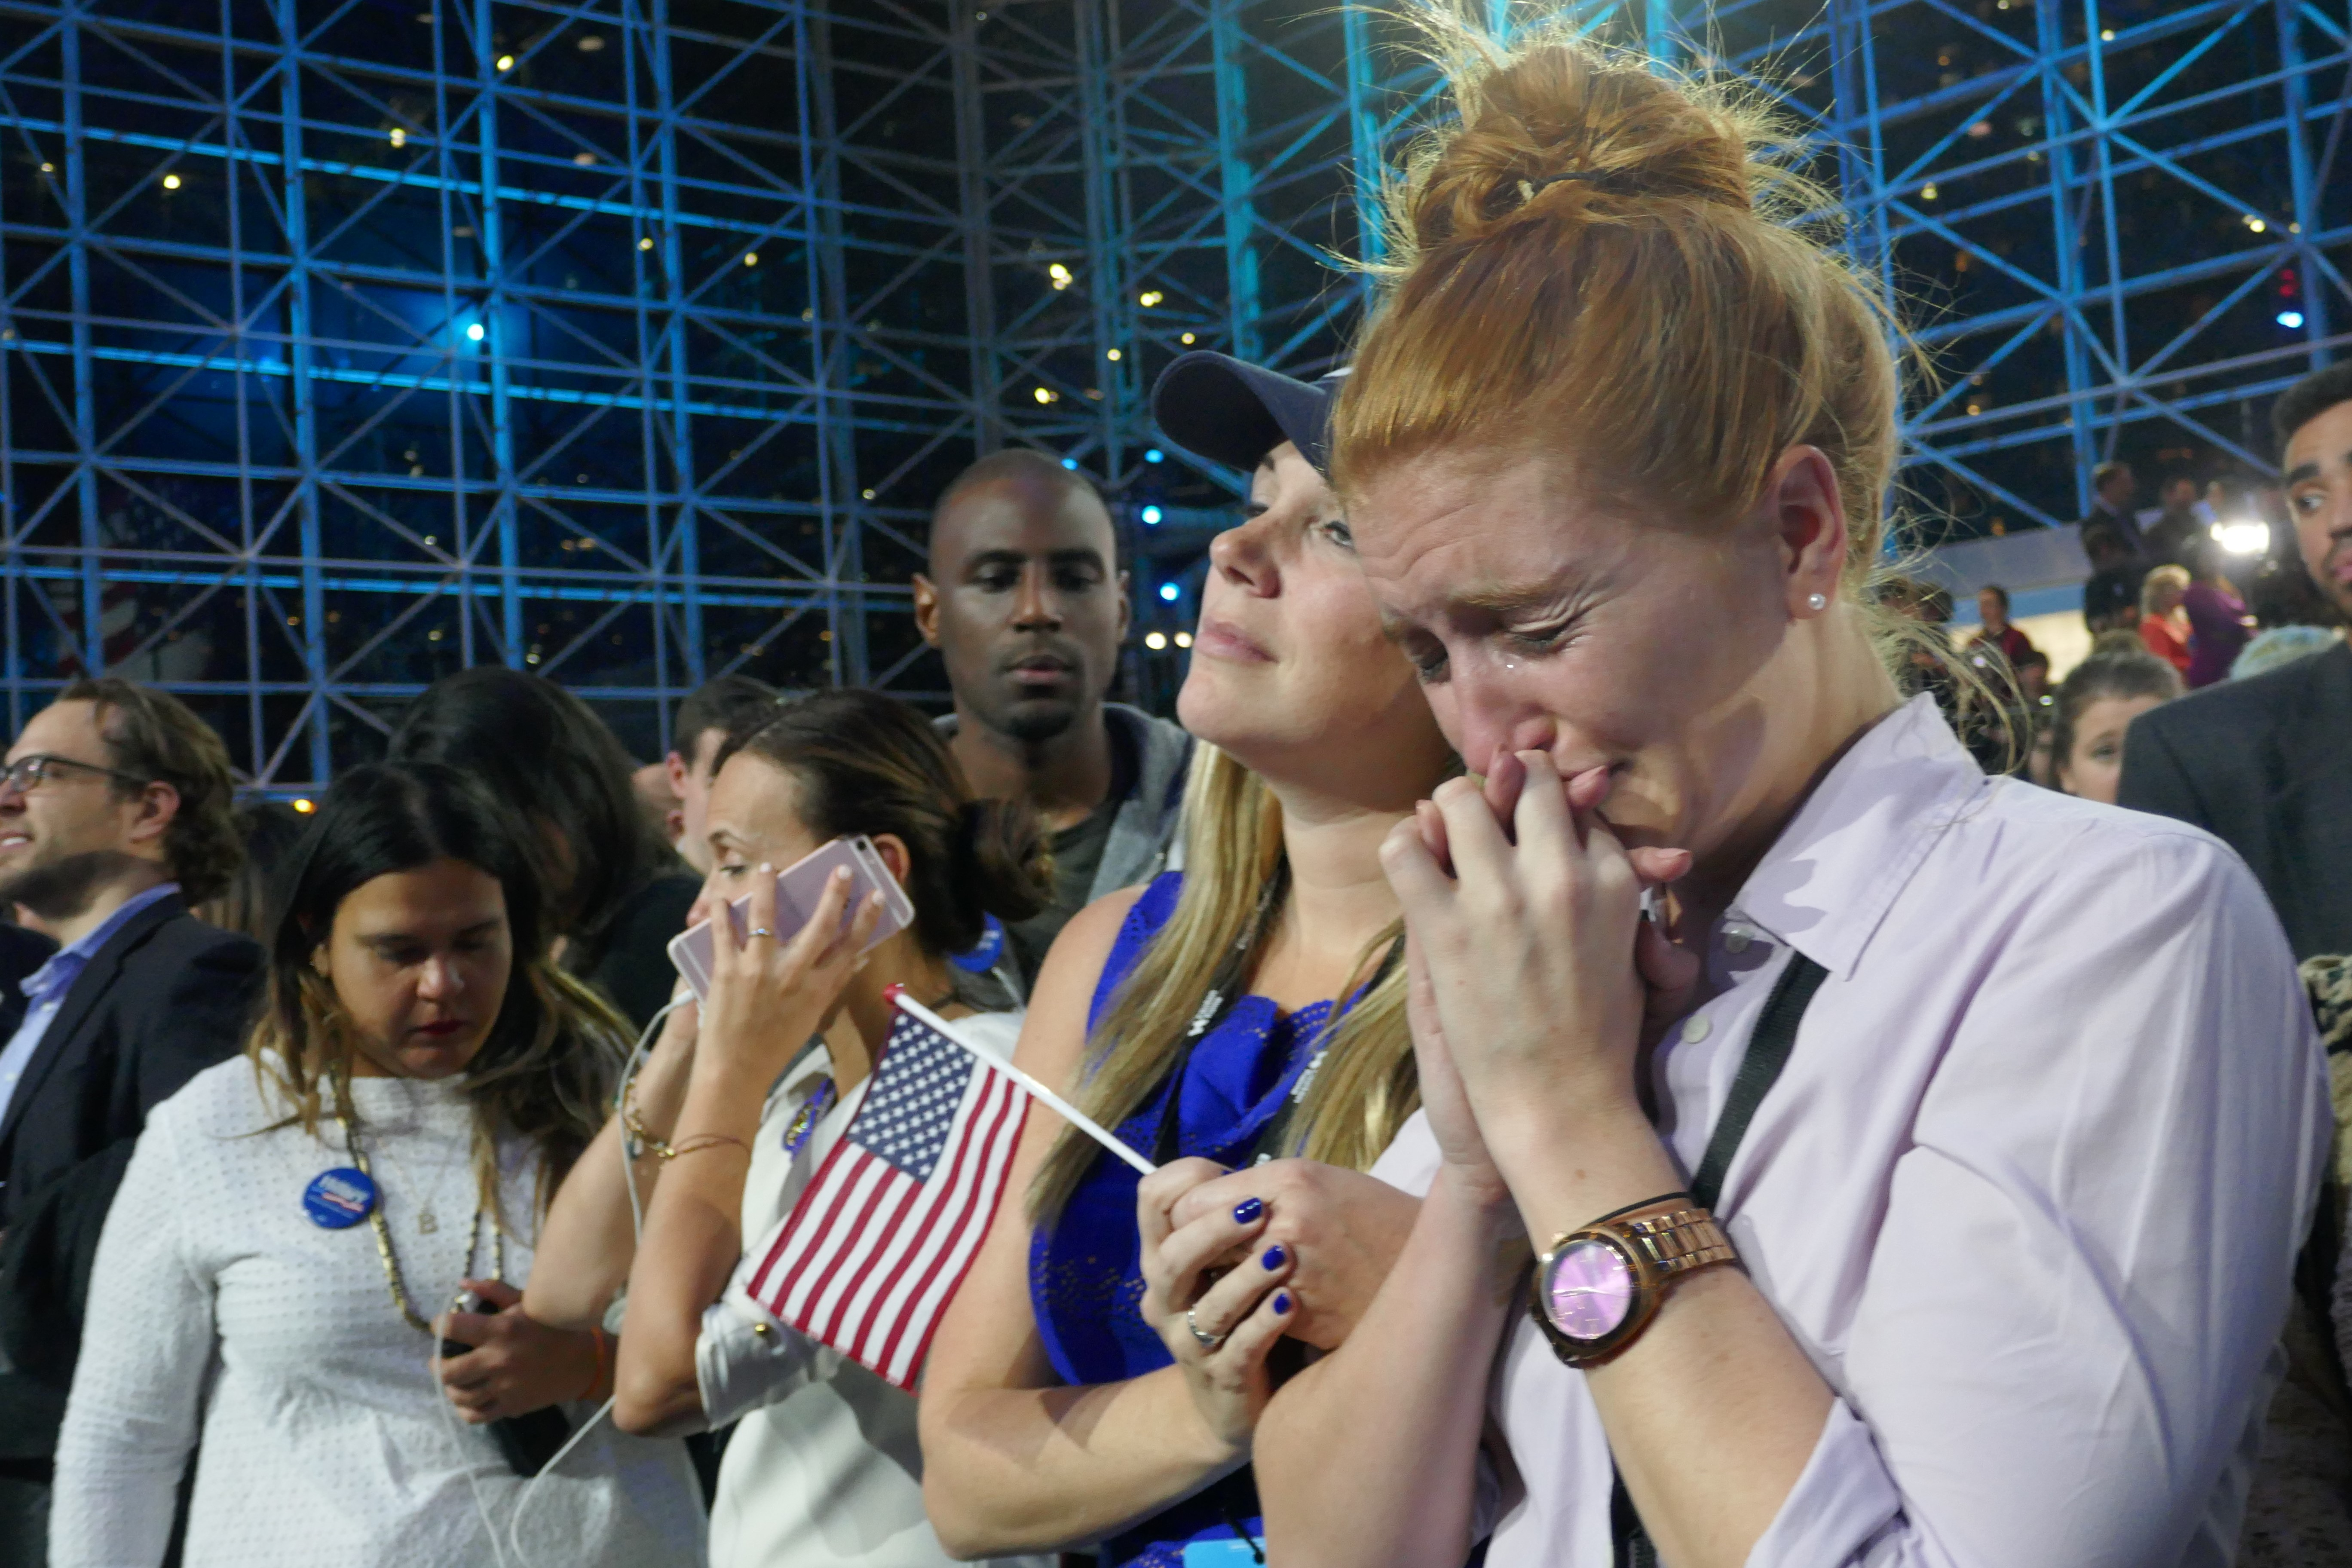 Clinton supporters' sorrow over Trump's Victory on US Presidential Election